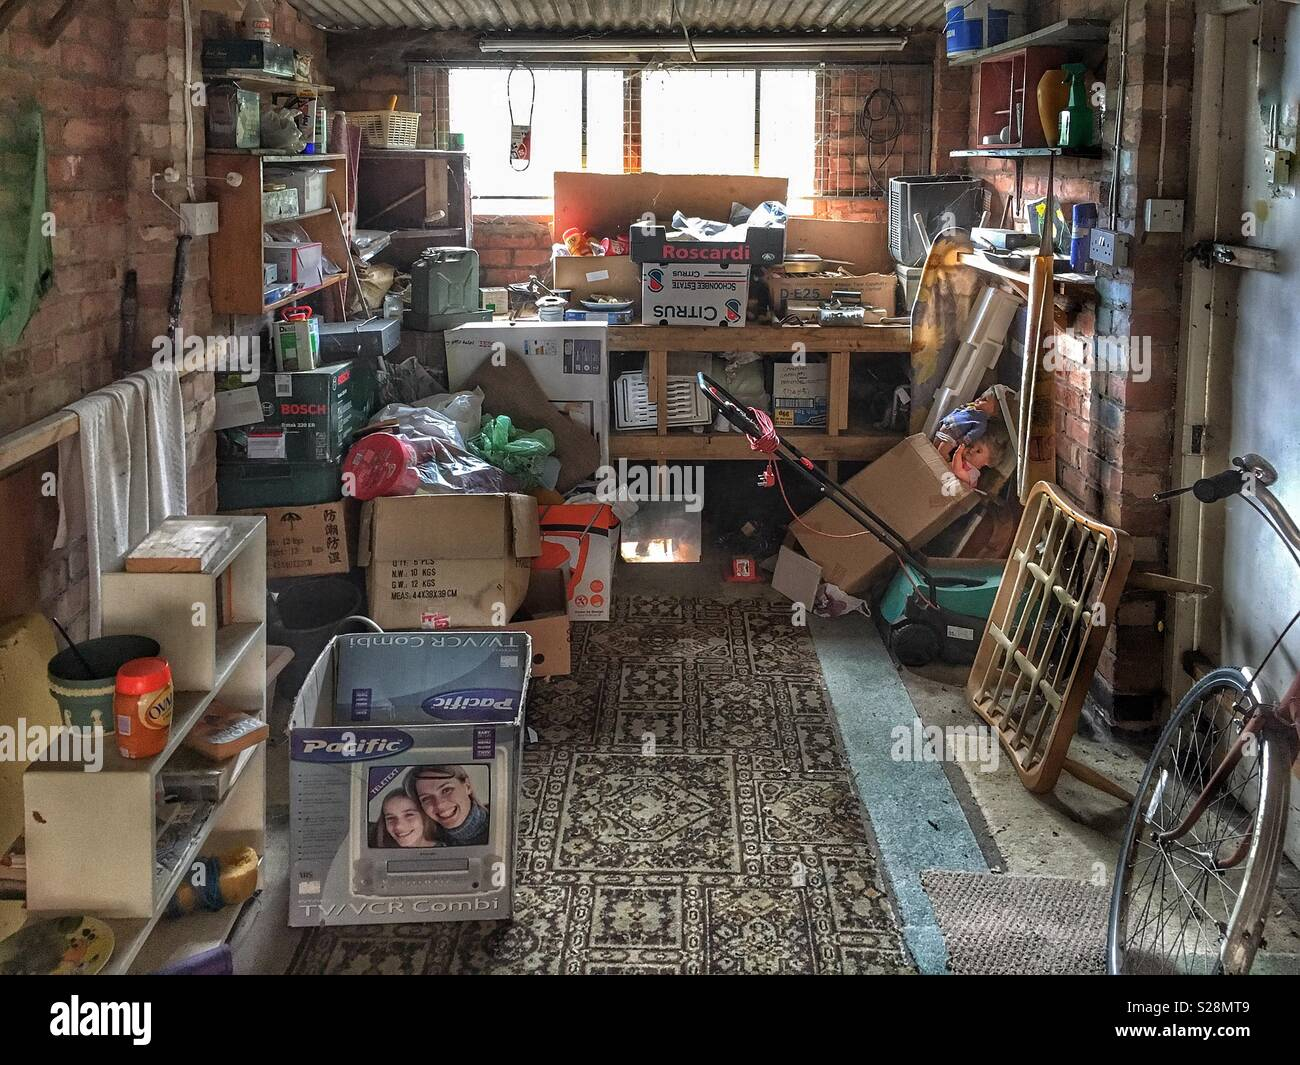 A garage full of junk - Stock Image